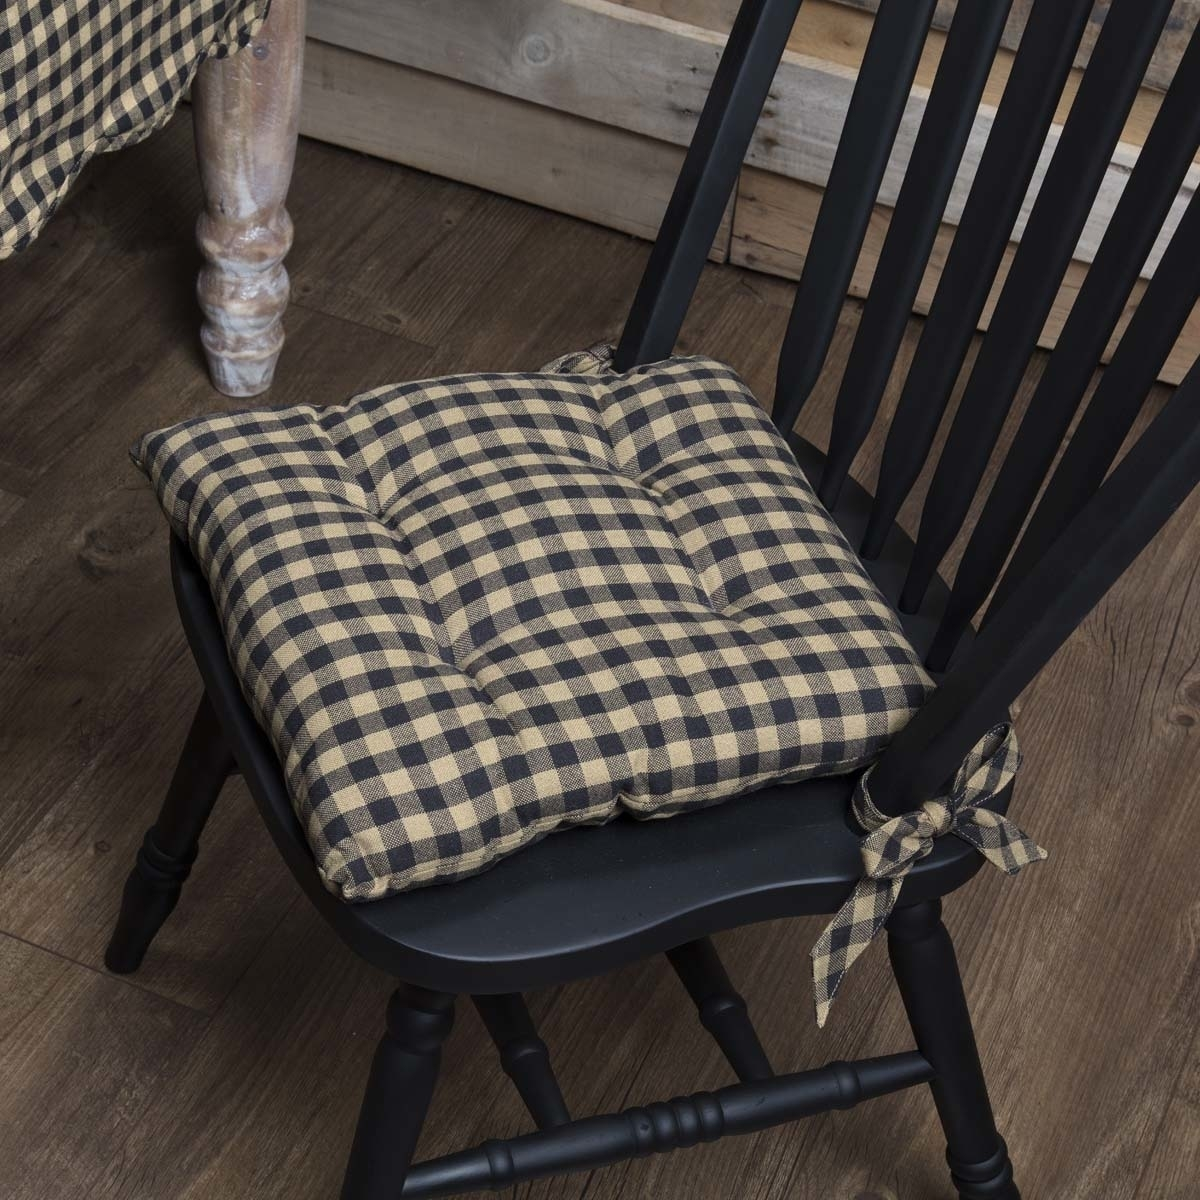 Sensational Primitive Tabletop Amp Kitchen Navy Check Chair Pad Sunbrella Patio Cushions Wicker Seat Cushions From Youergarden 22 62 Dhgate Com Ibusinesslaw Wood Chair Design Ideas Ibusinesslaworg